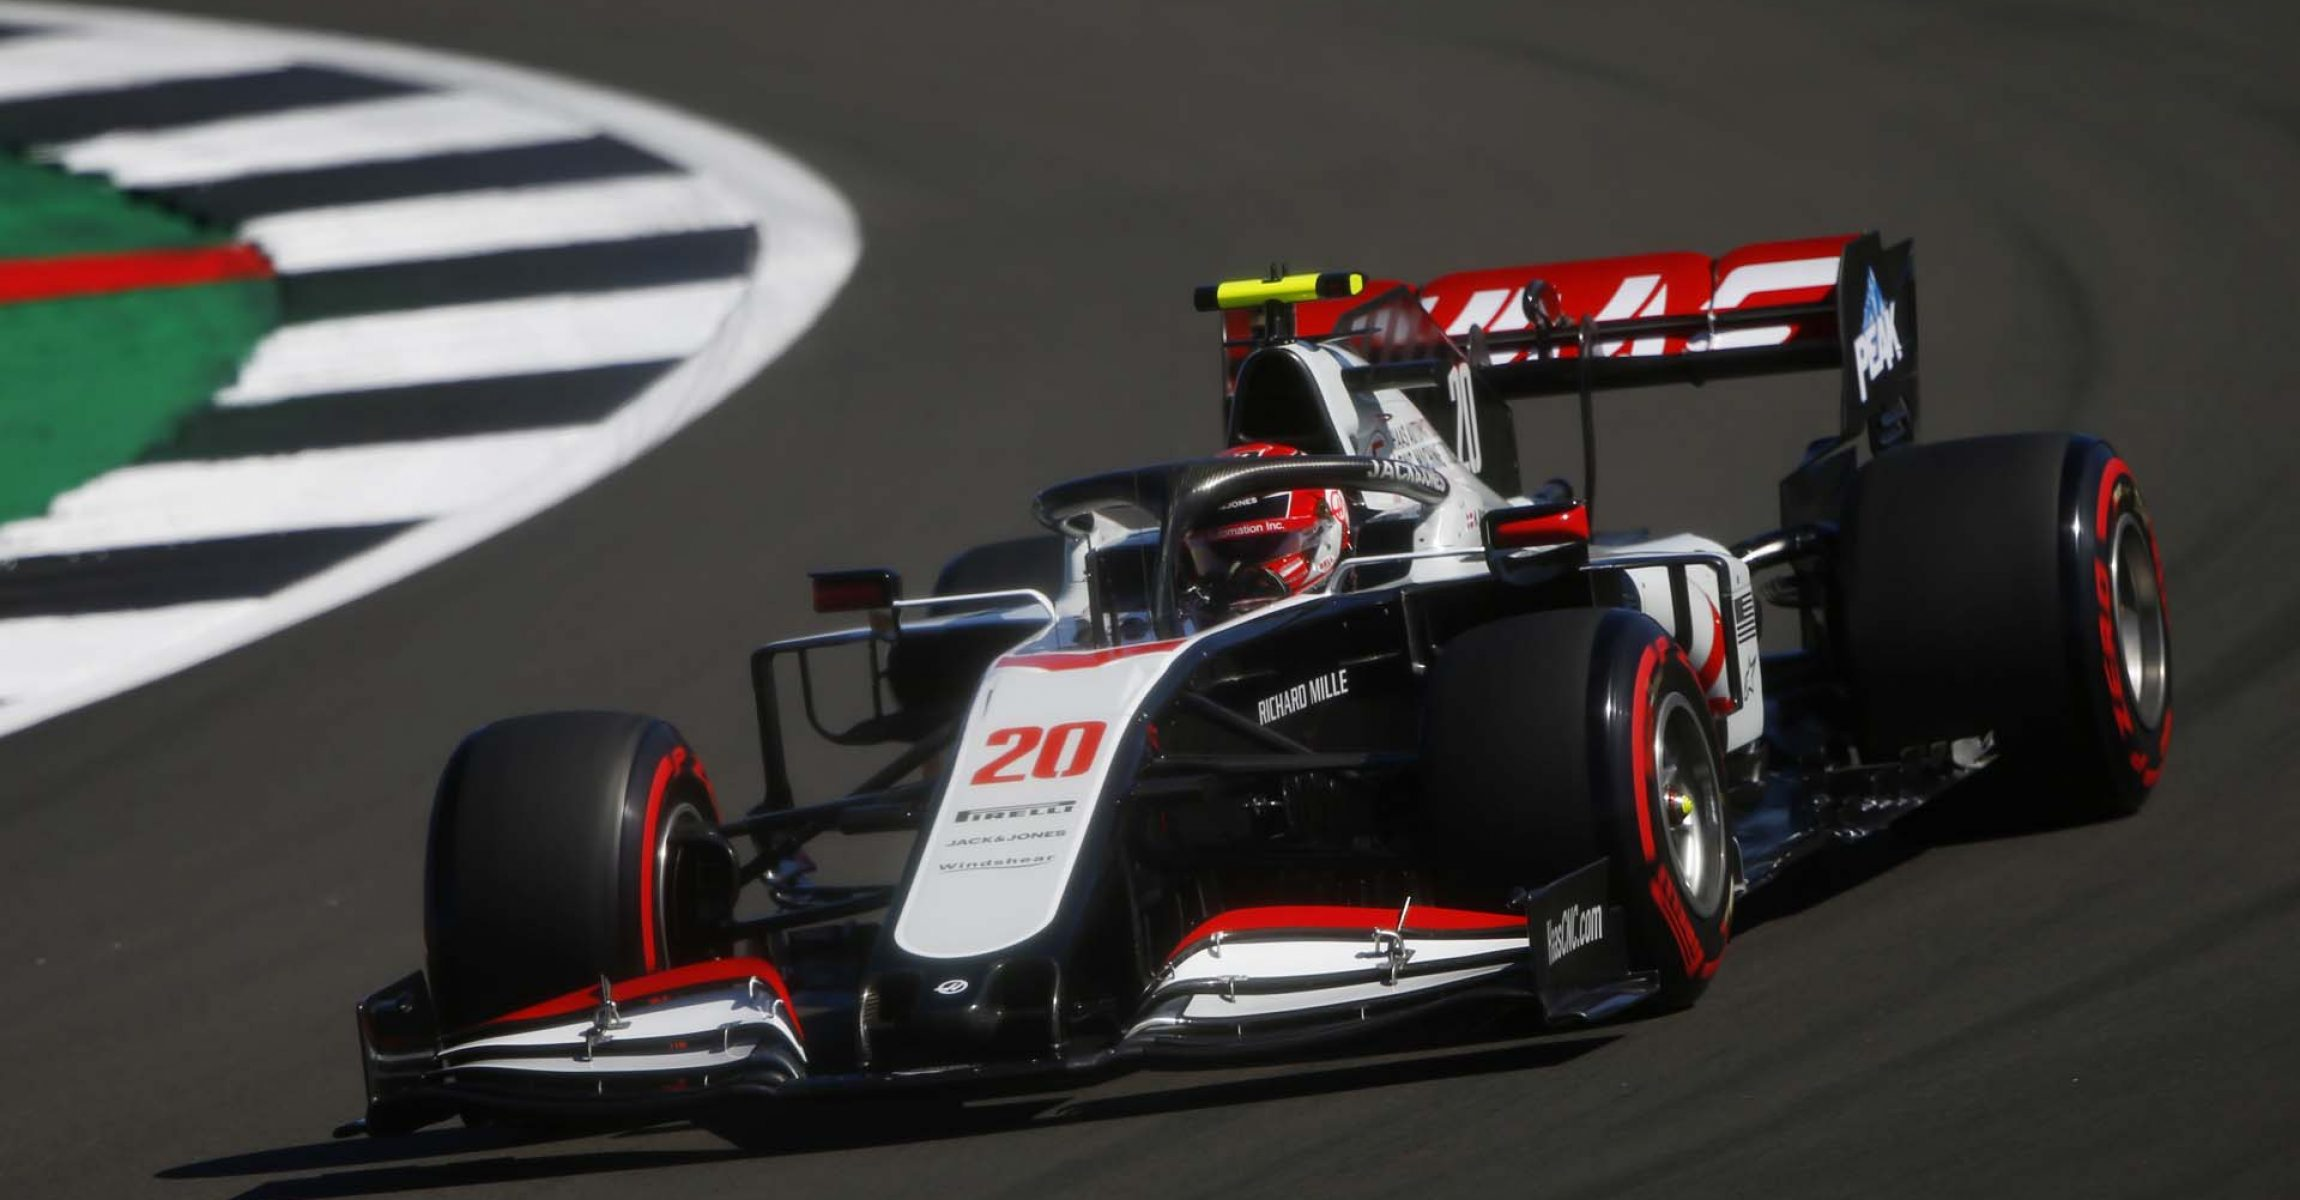 SILVERSTONE, UNITED KINGDOM - AUGUST 07: Kevin Magnussen, Haas VF-20 during the 70th Anniversary GP at Silverstone on Friday August 07, 2020 in Northamptonshire, United Kingdom. (Photo by Andy Hone / LAT Images)